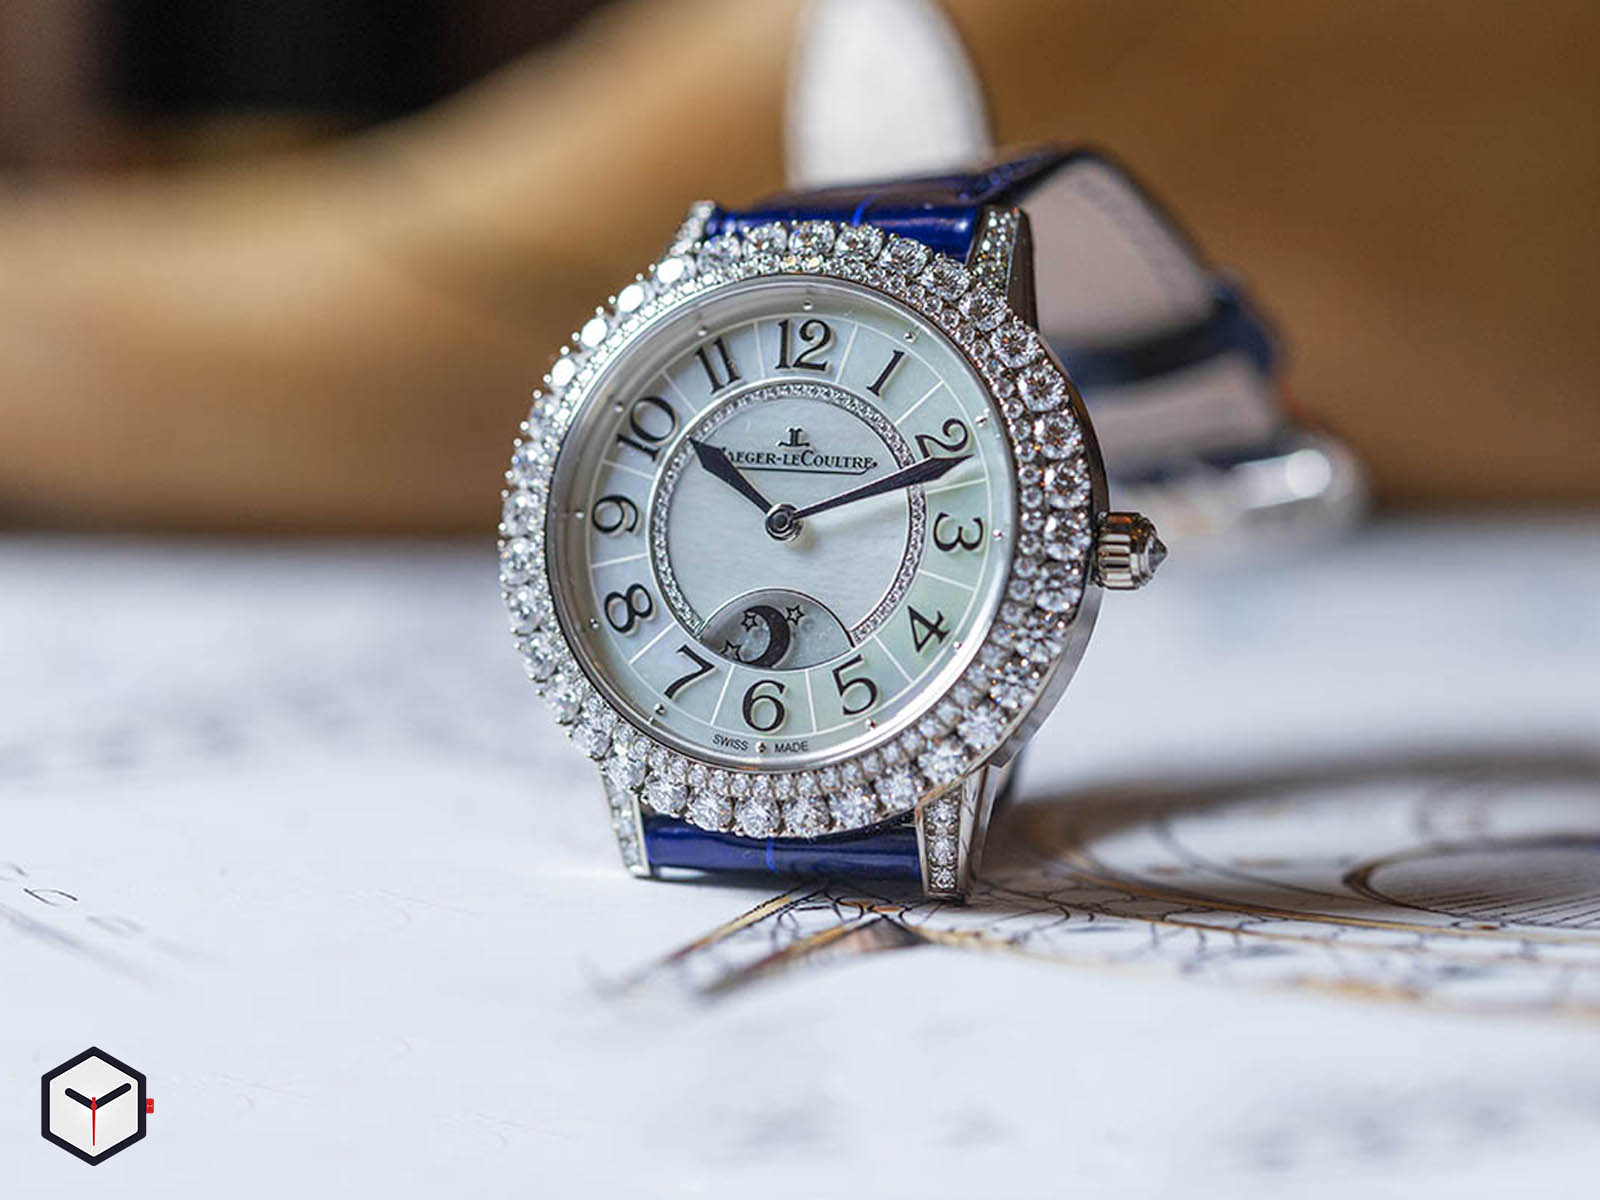 3433570-jaeger-lecoultre-rendez-vous-night-day-white-gold-sihh-2019-2.jpg